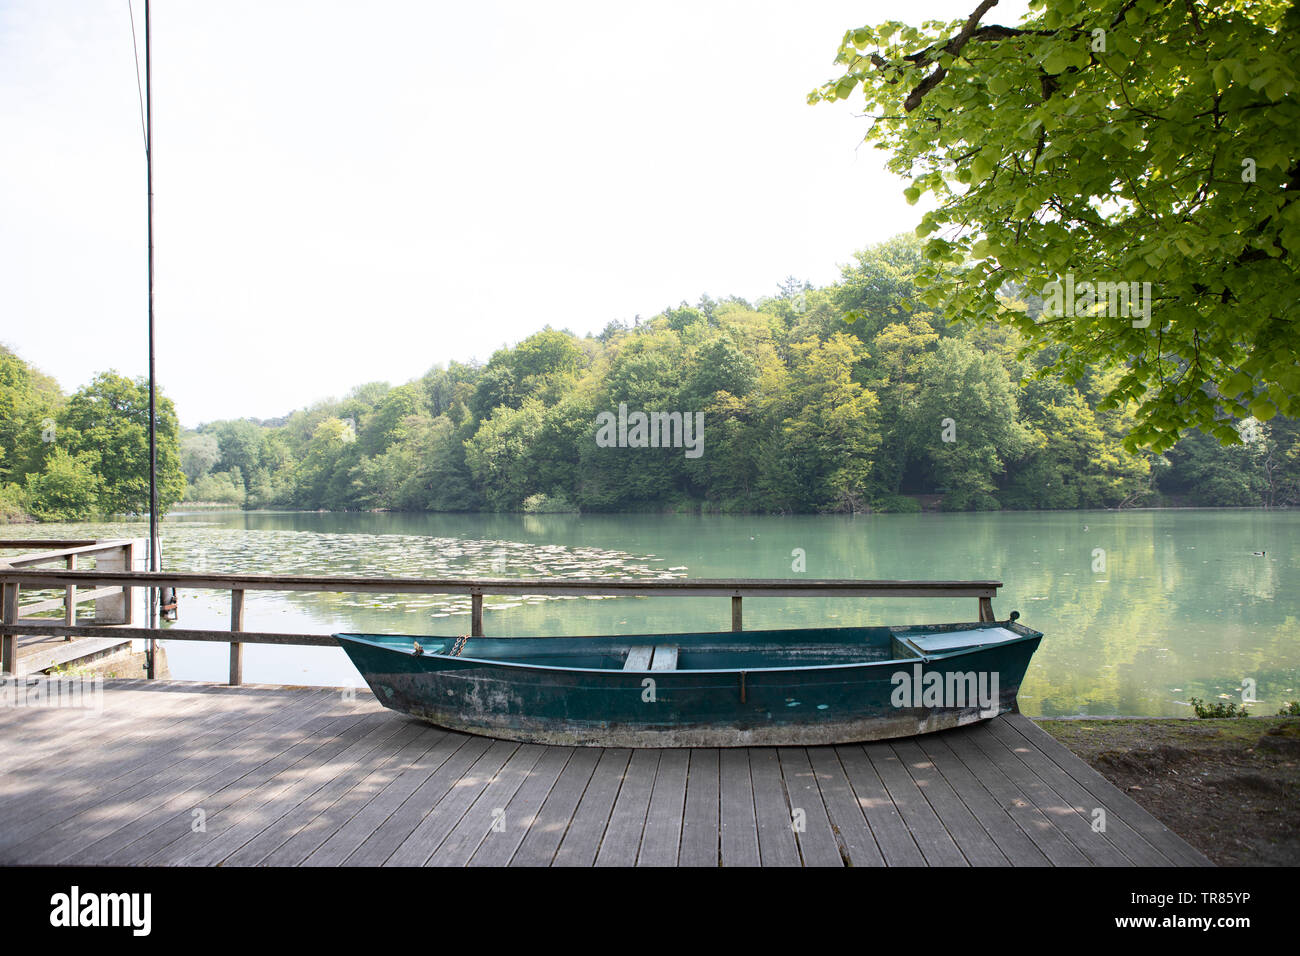 Boat by a lake, Sept fontaines, Belgium - Stock Image